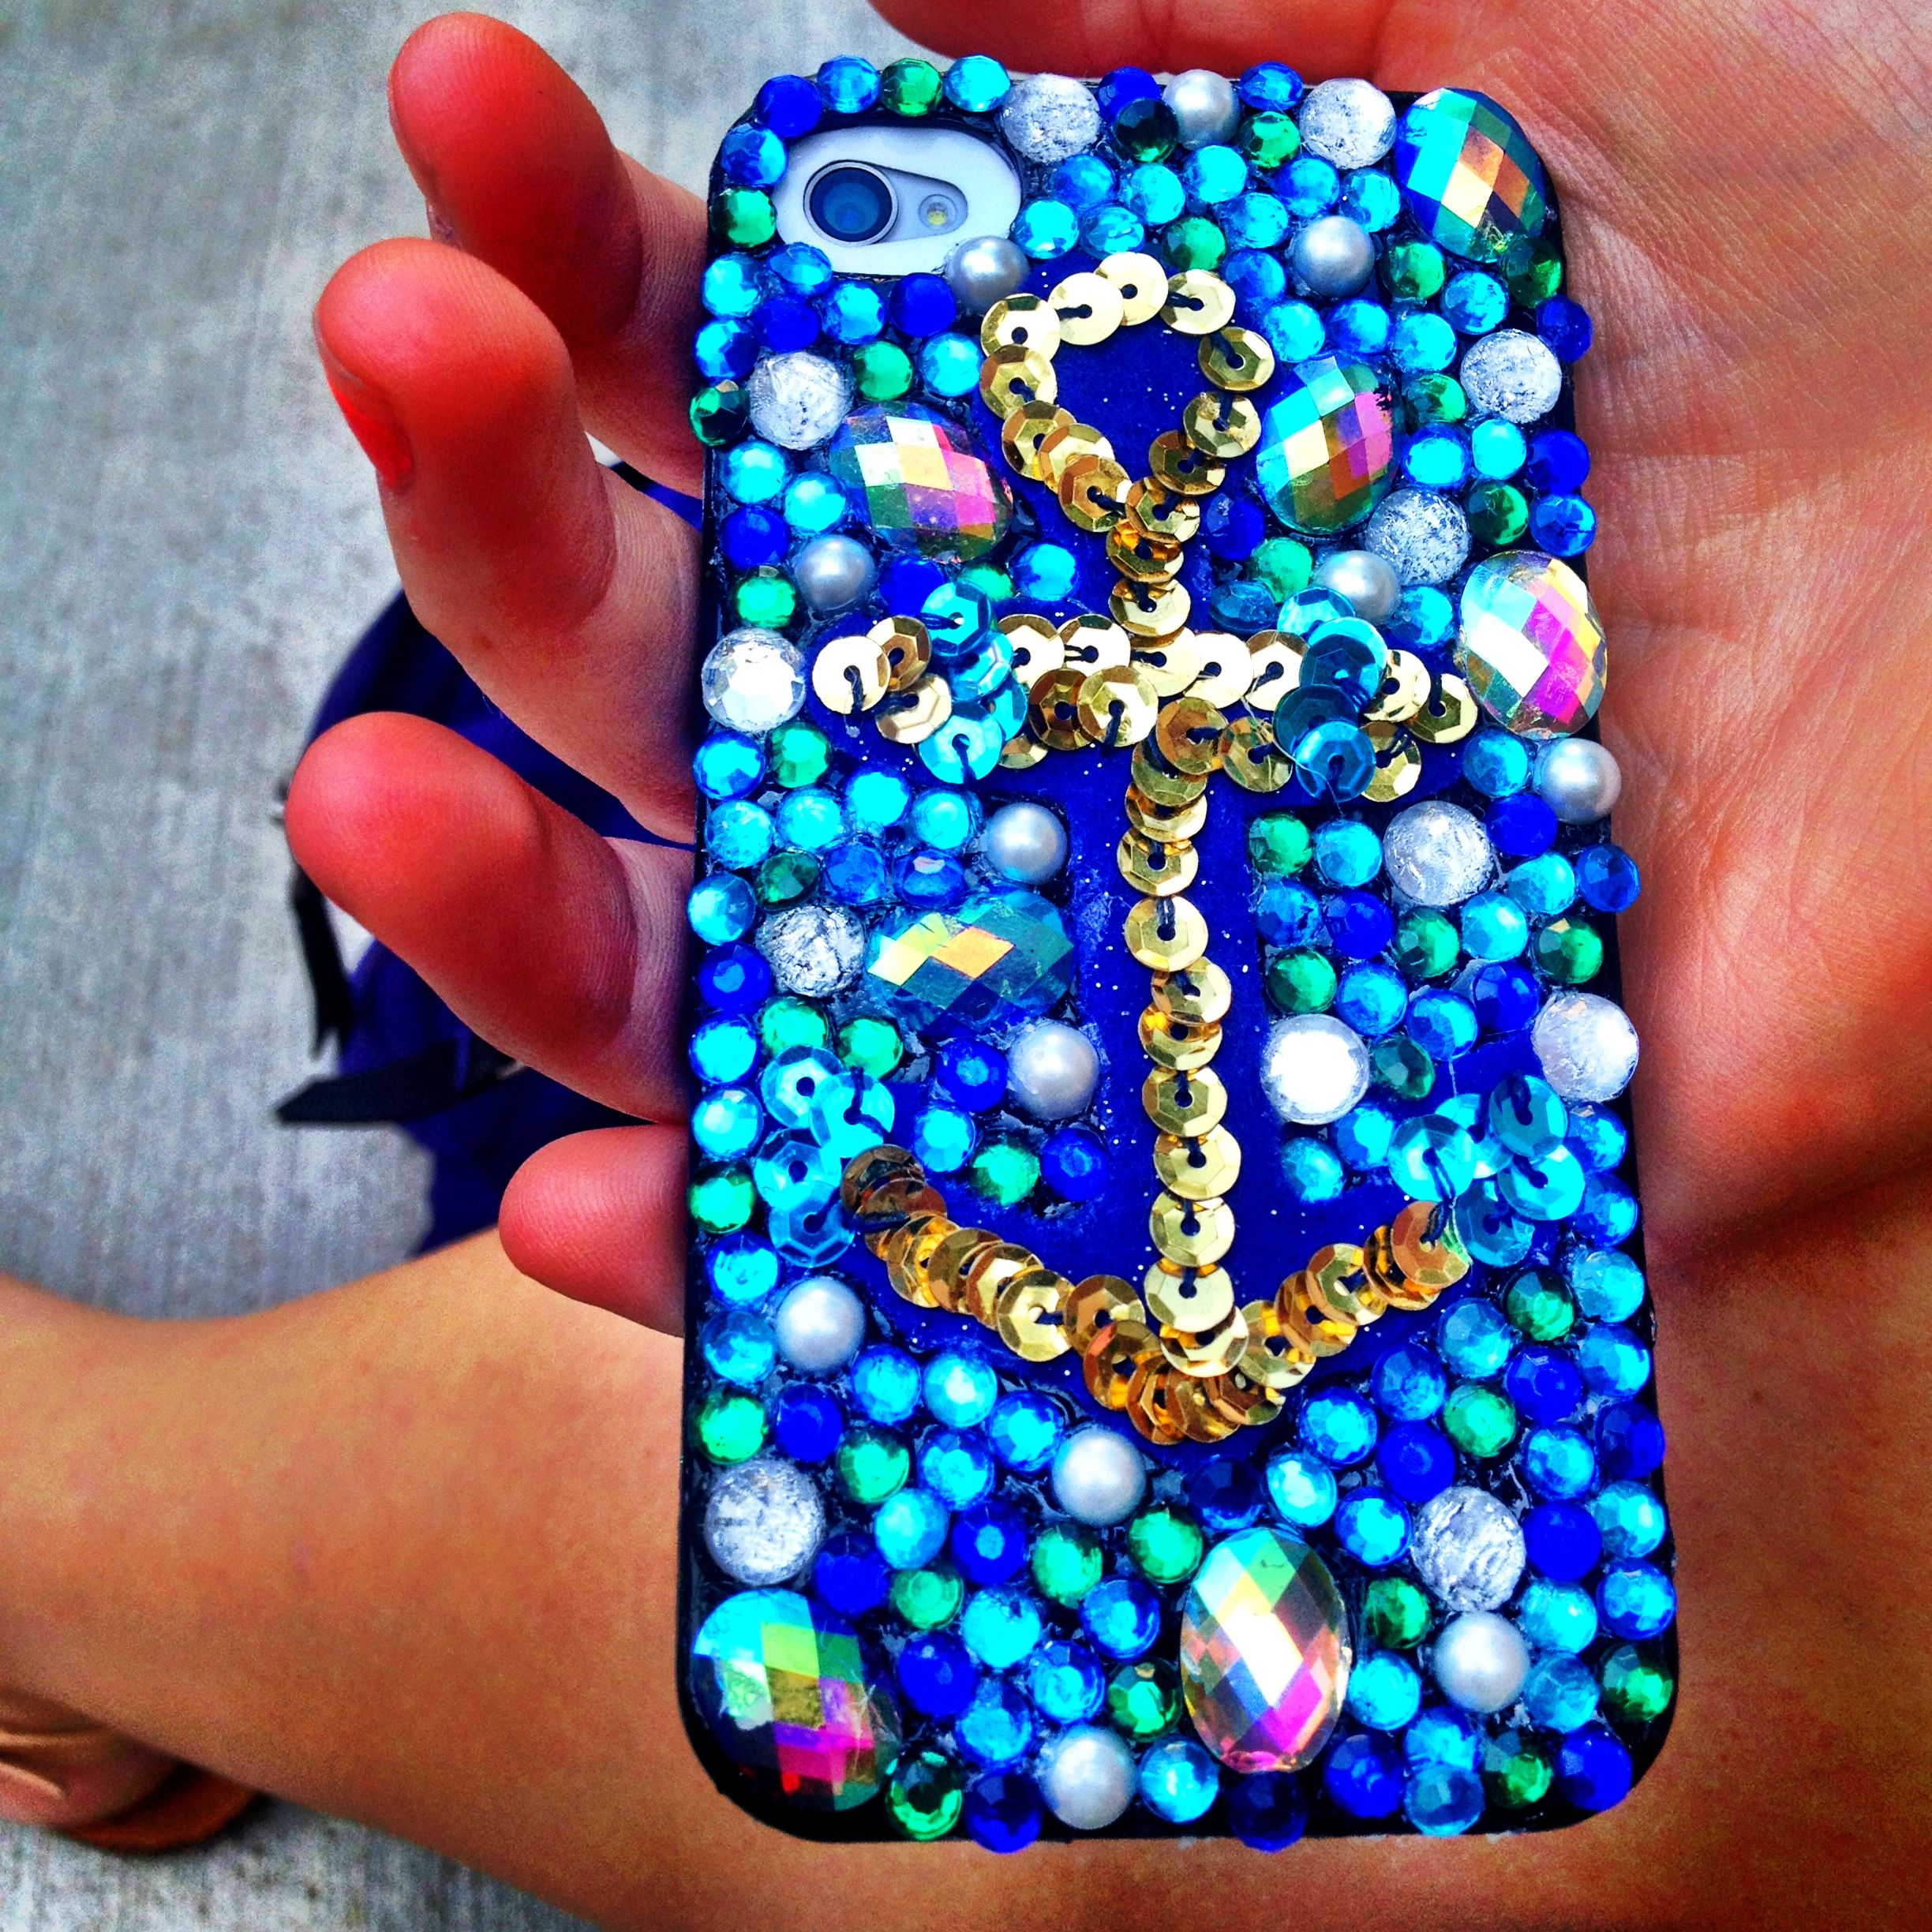 Homemade phone case crafts and things to do pinterest for How to make a homemade phone case